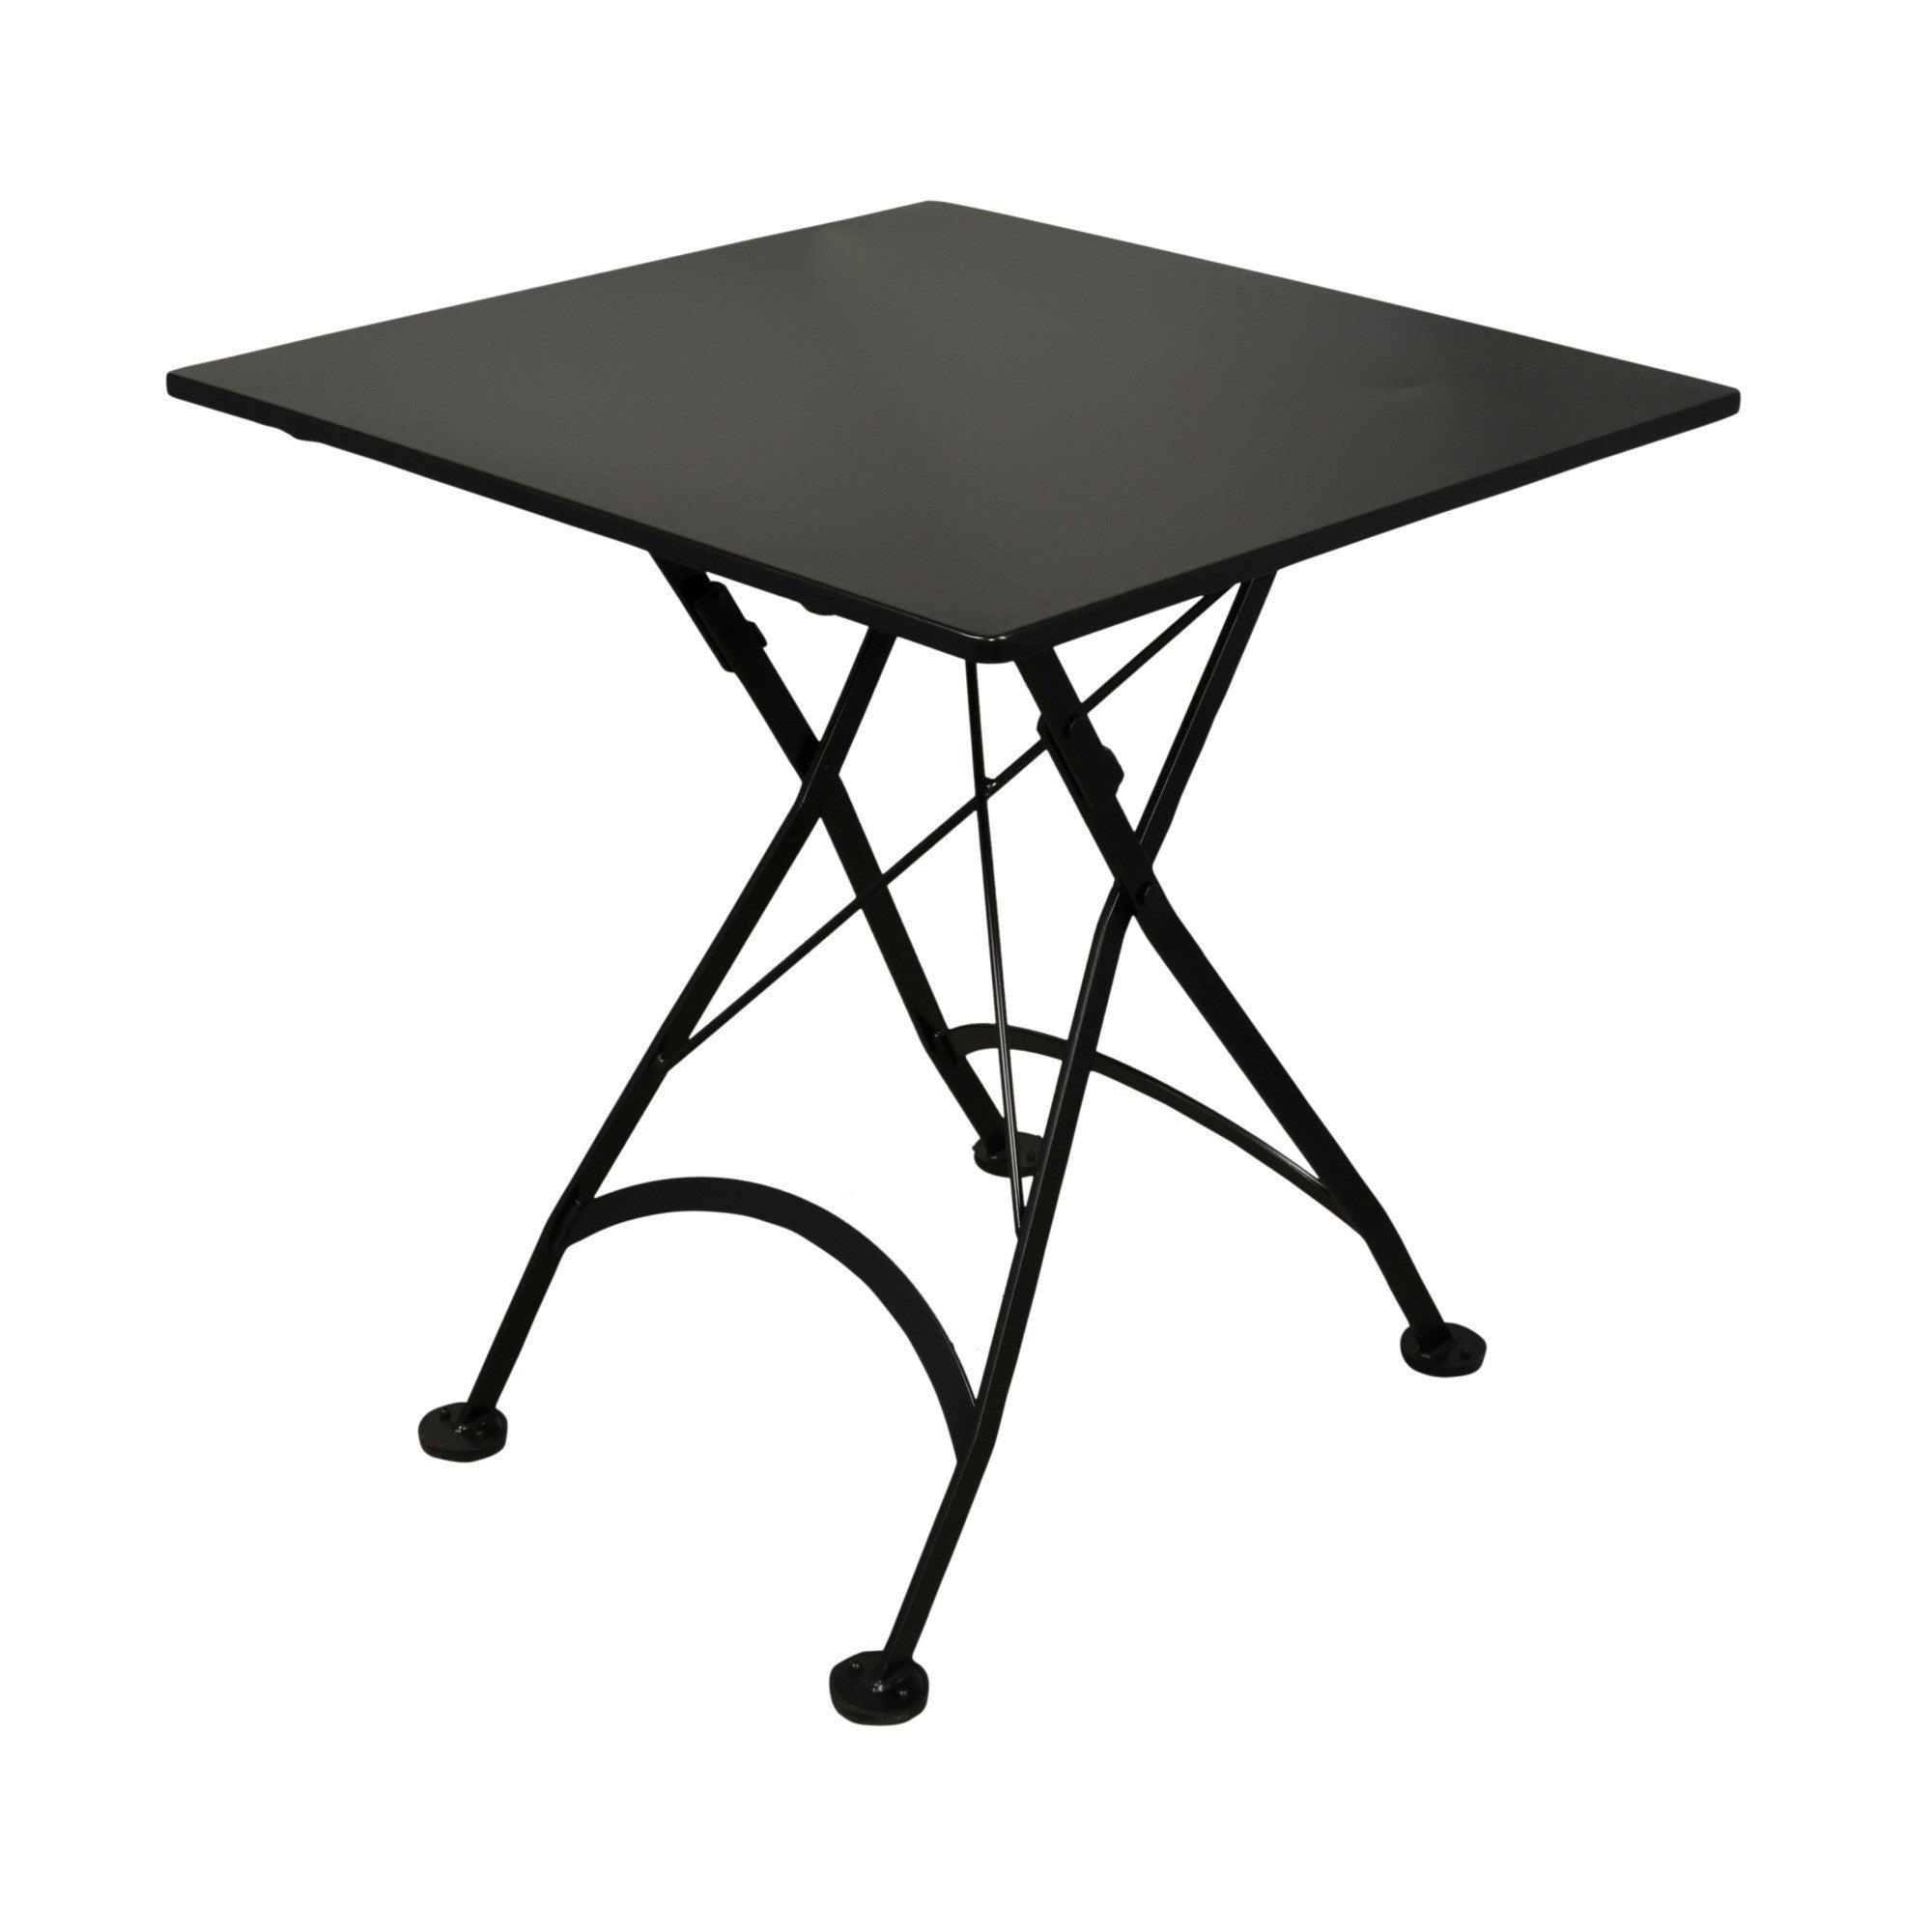 Square folding tables - 32 Inch Square European Folding Steel Metal Bistro Table